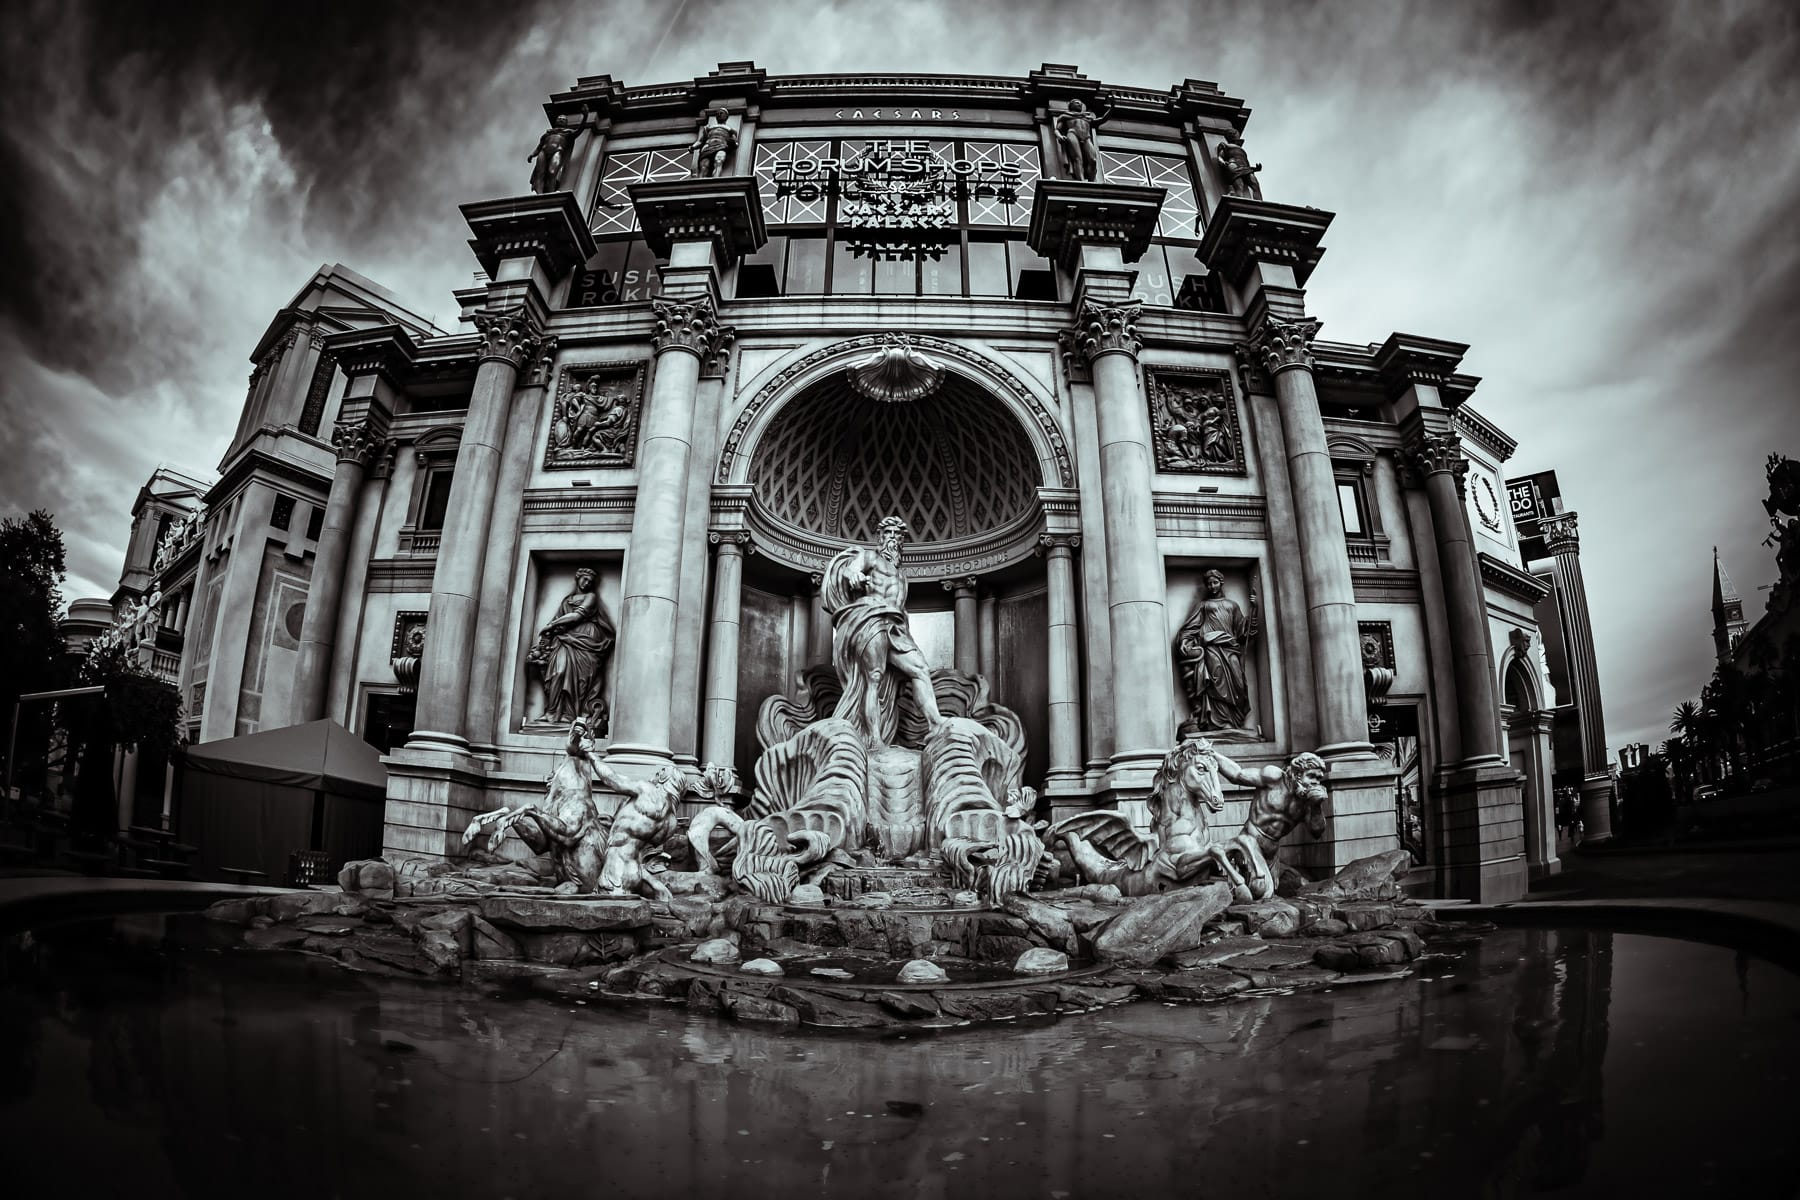 The replica of Rome's Trevi Fountain at Caesars Palace, Las Vegas.